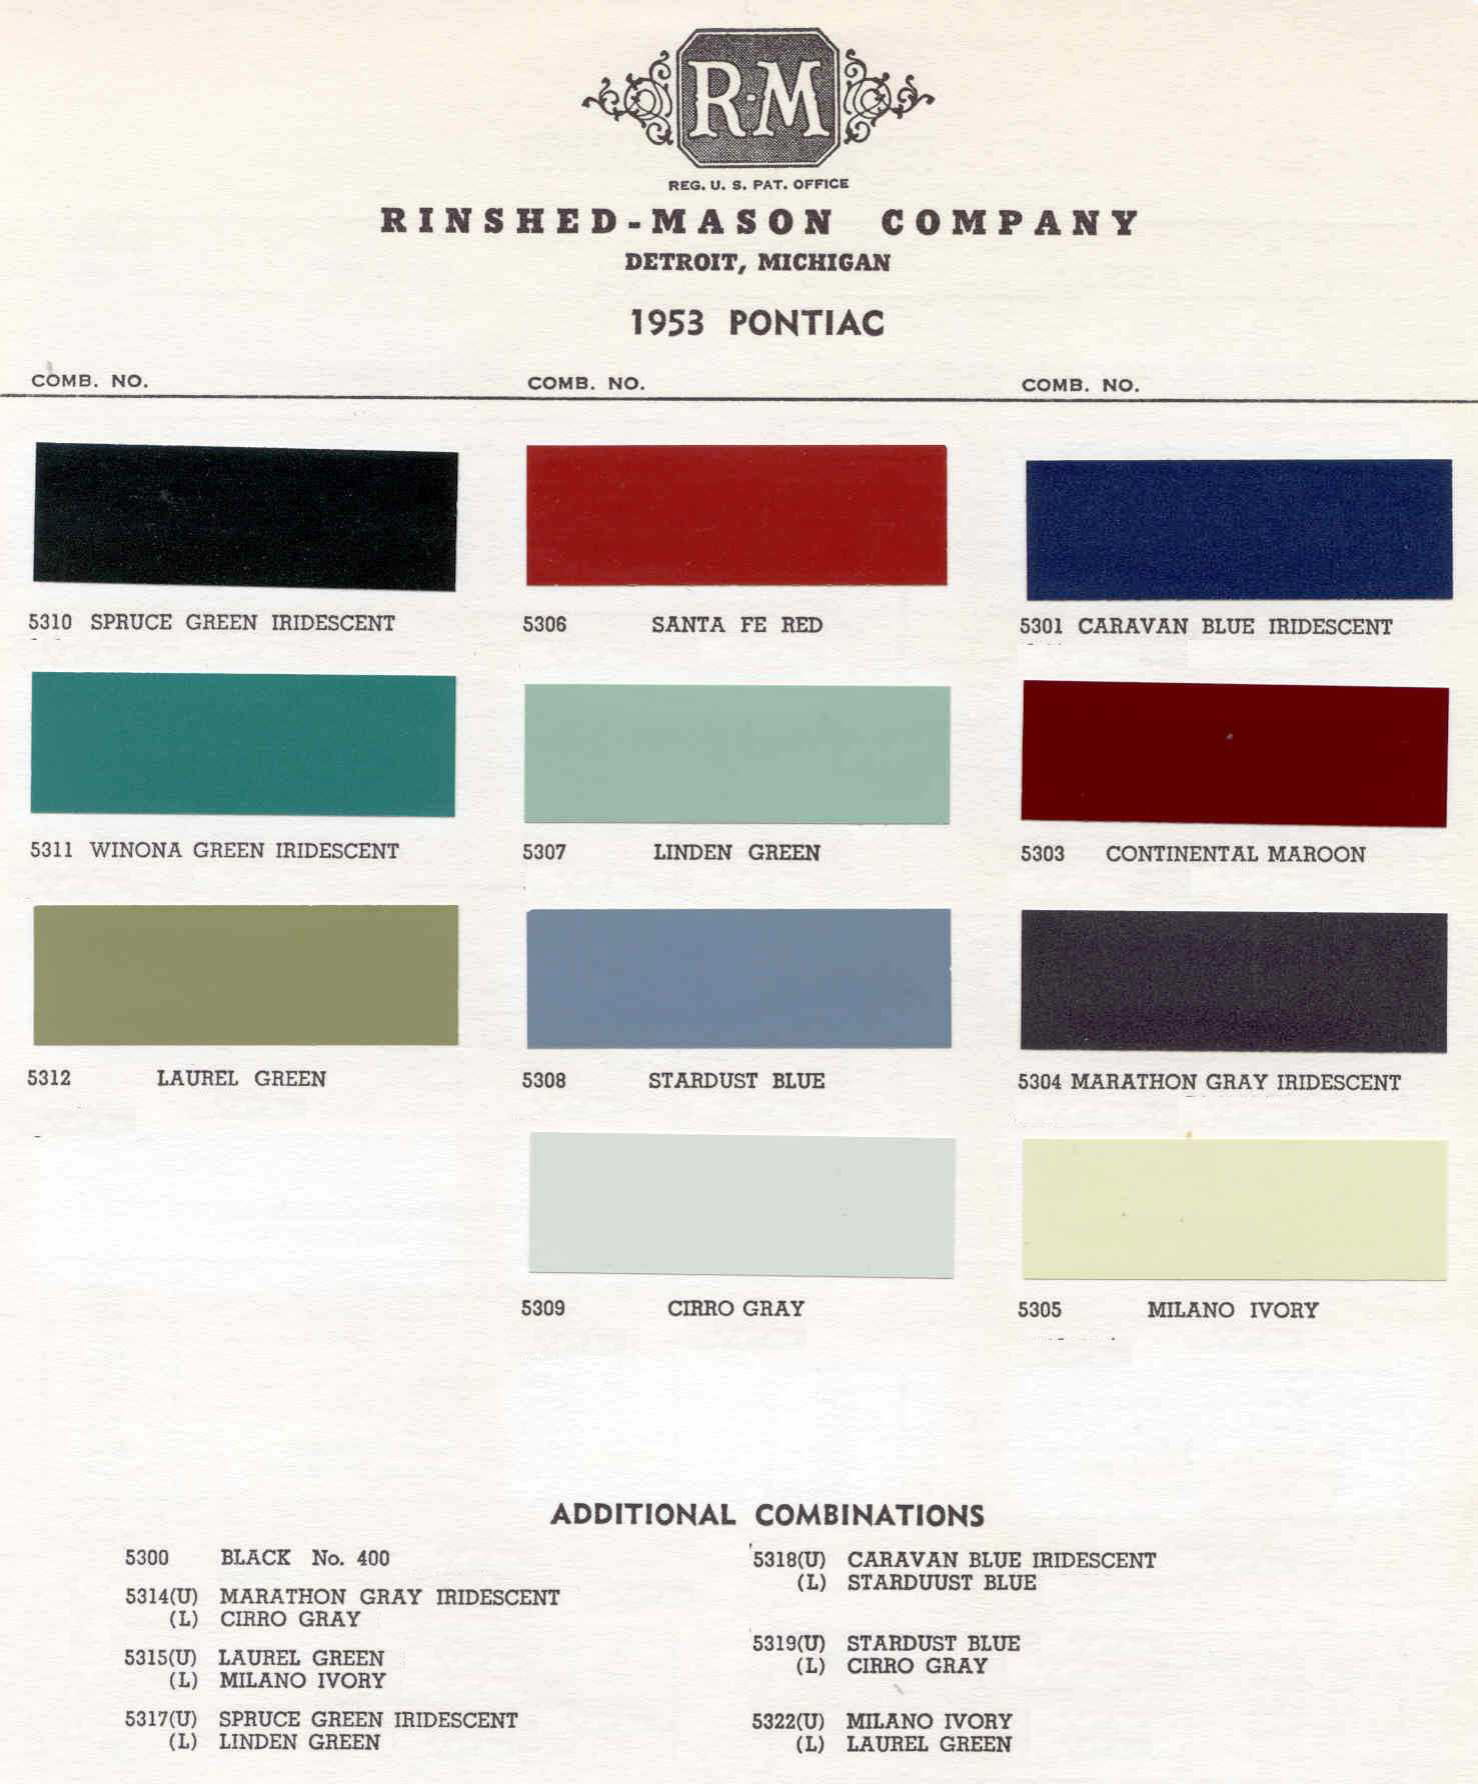 Color Code and Paint Color Chart for Pontiac for 1953